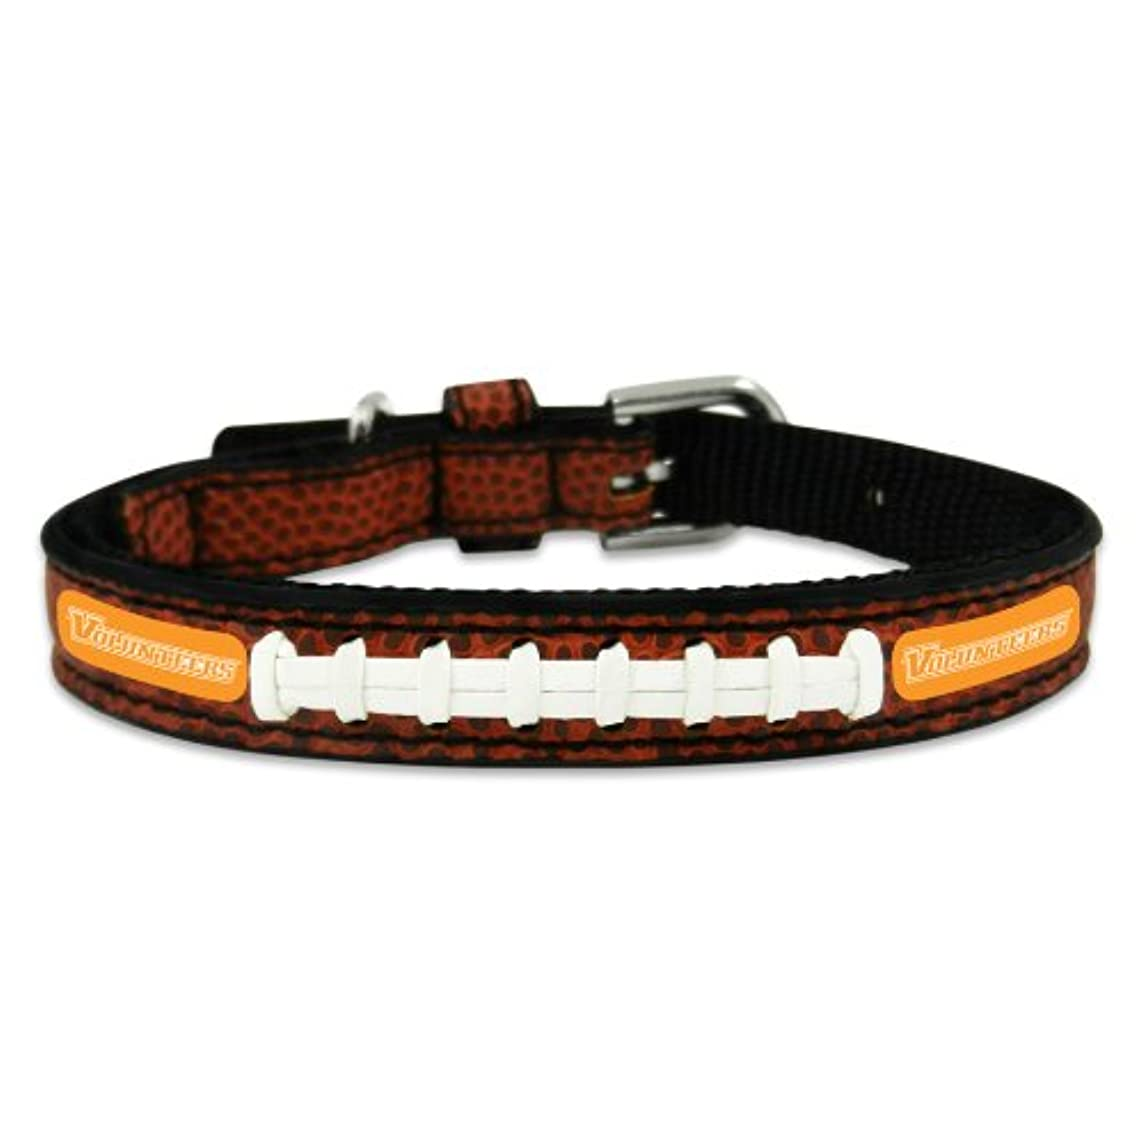 一握り余分な理解Tennessee Volunteers Classic Leather Toy Football Collar